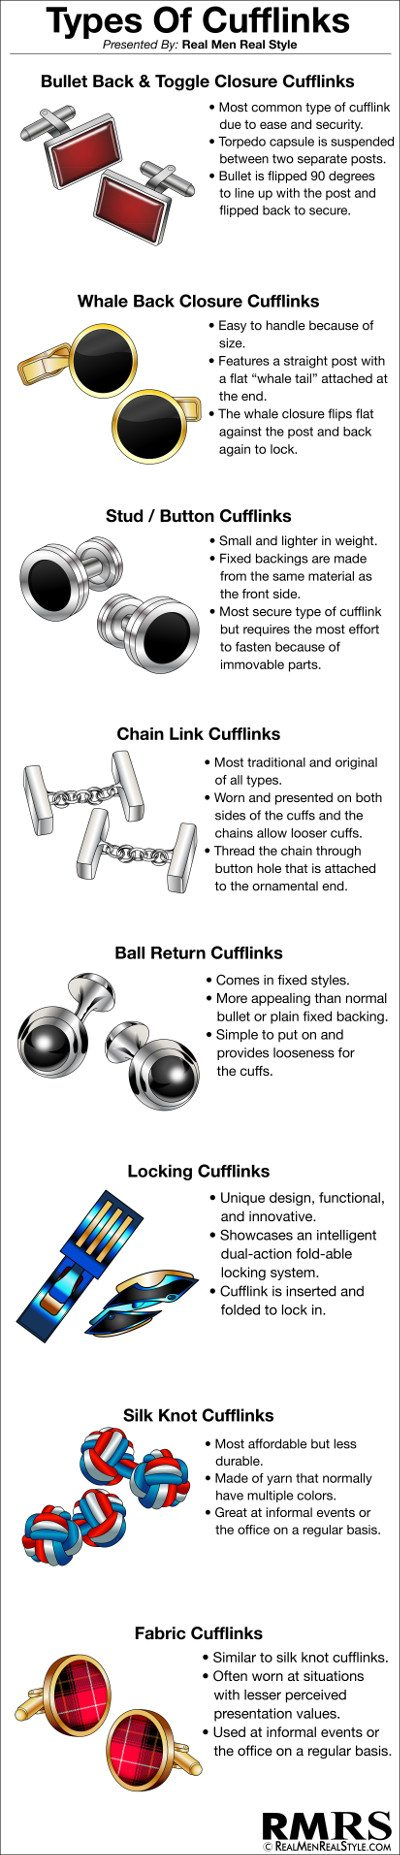 Types-Of-Cufflinks 400